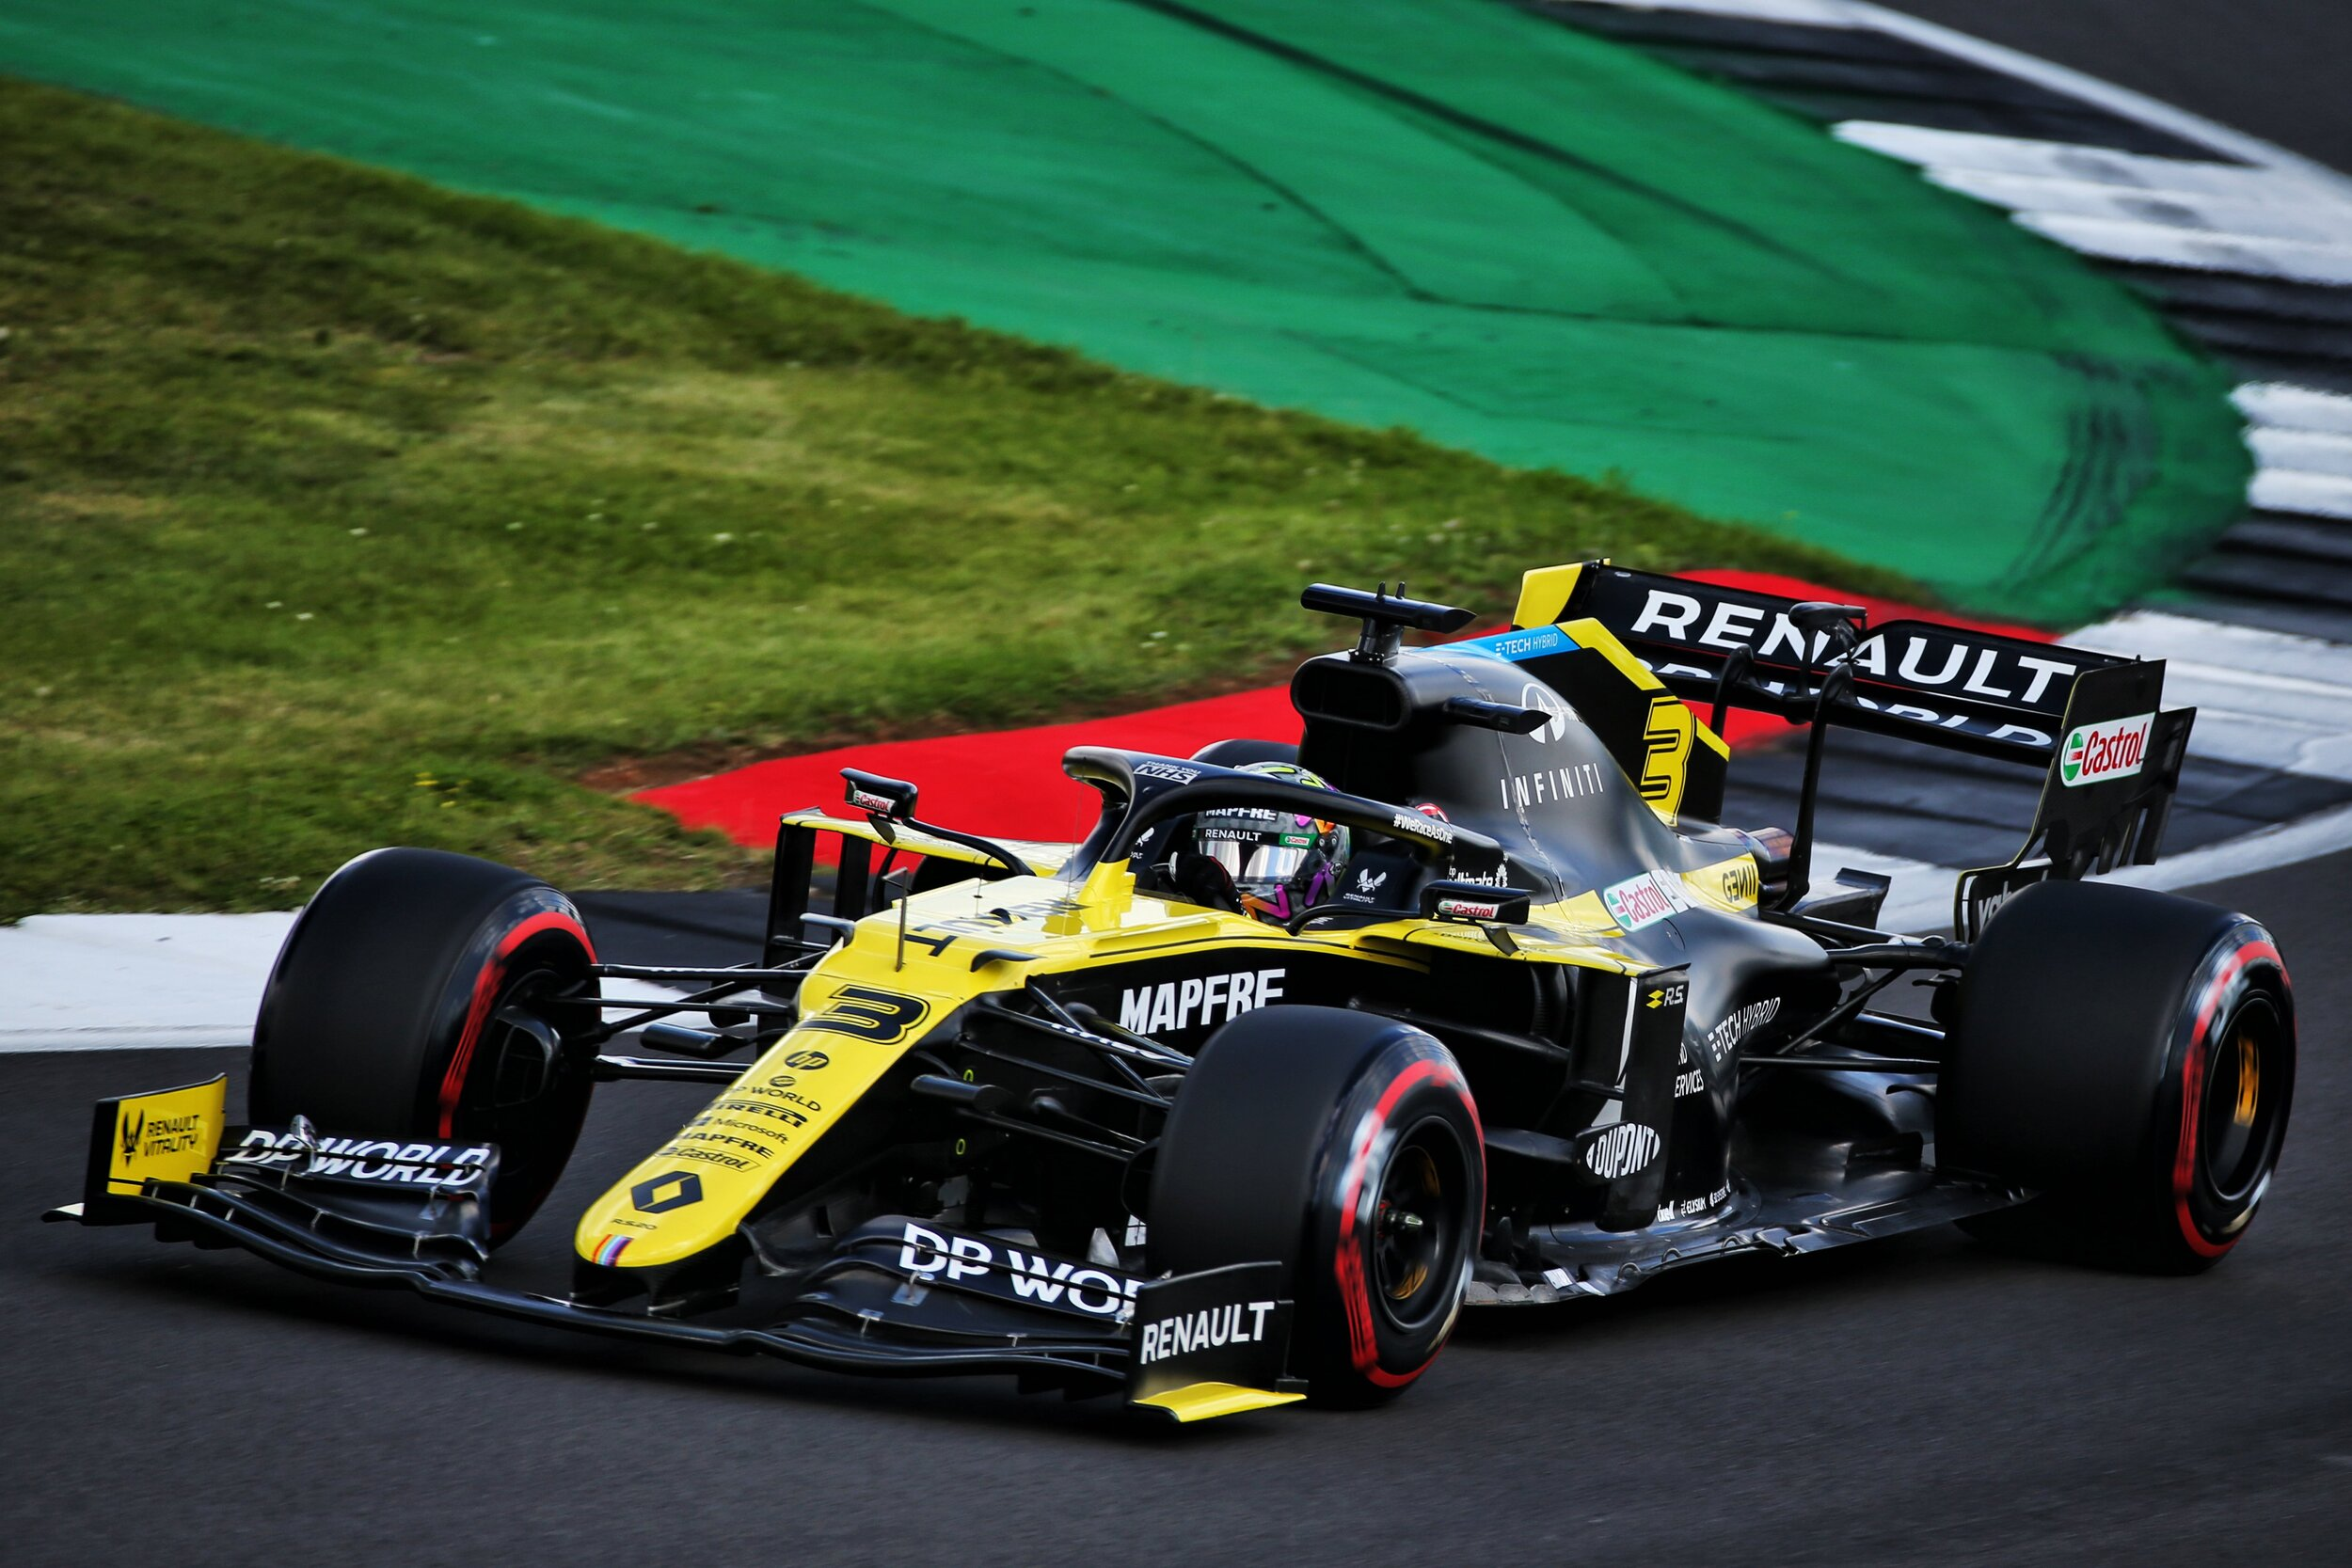 Daniel Ricciardo Happy With Eighth Place To Start British Grand Prix Highway F1